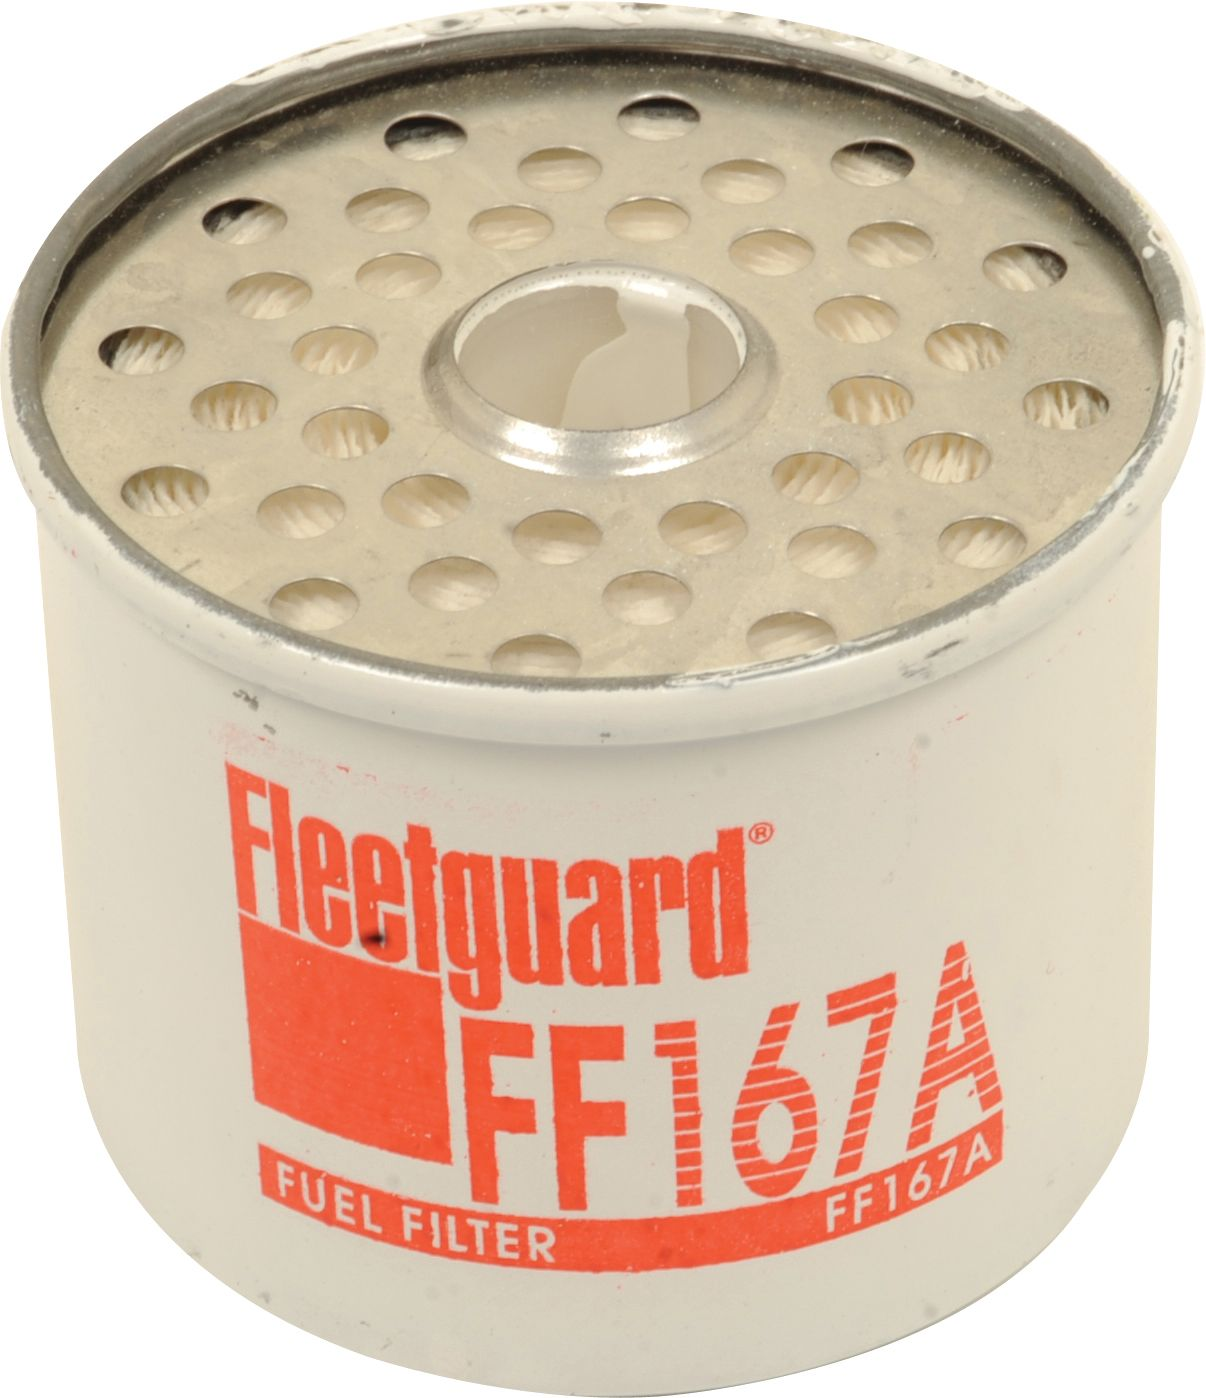 EICHER FUEL FILTER FF167A